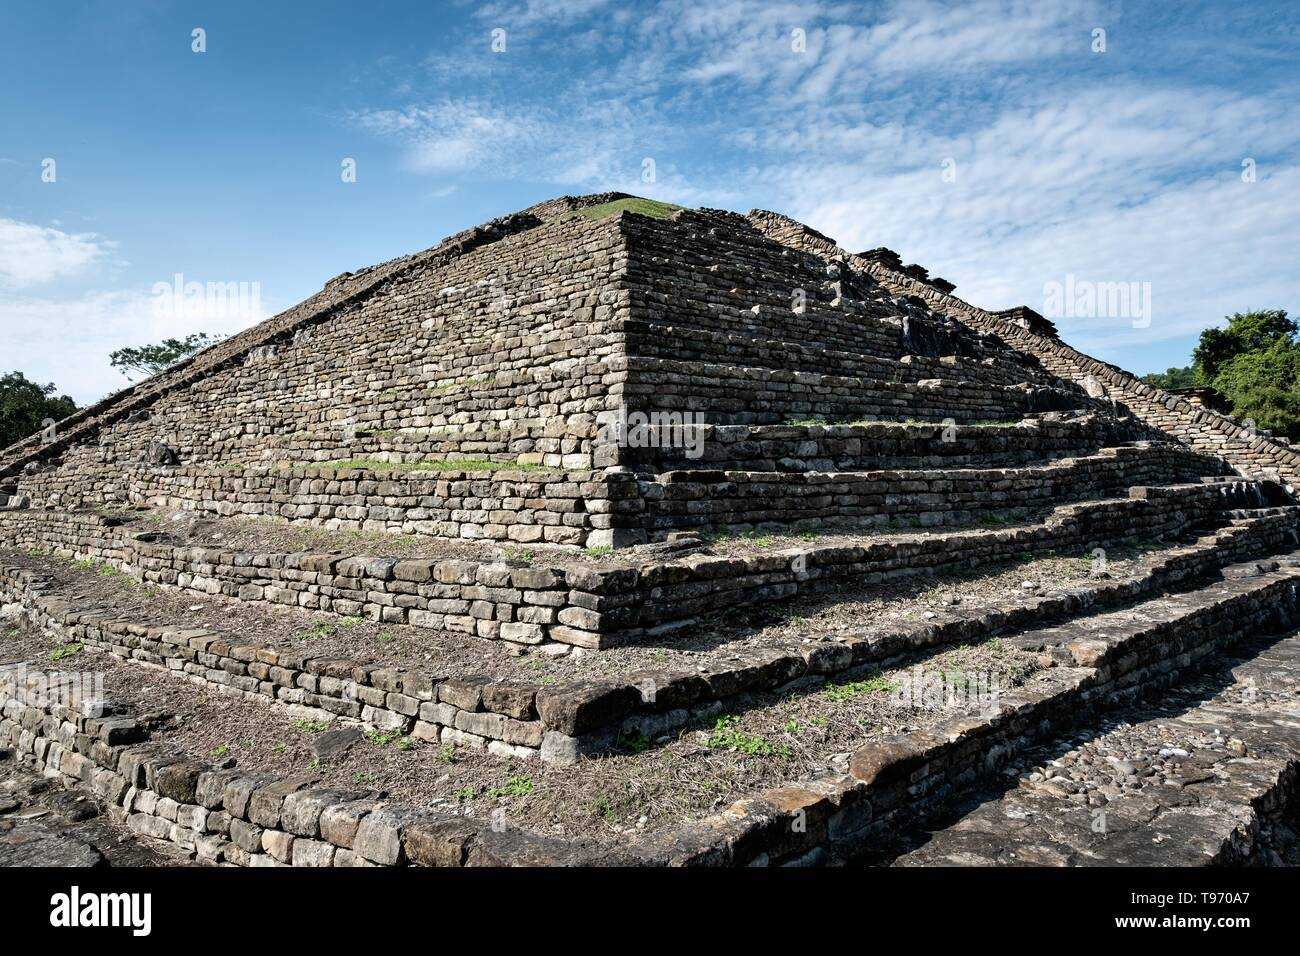 Mesoamerica pyramid called building 19 in the Arroyo Group at the pre-Columbian archeological site of El Tajin in Tajin, Veracruz, Mexico. El Tajín flourished from 600 to 1200 CE and during this time numerous temples, palaces, ballcourts, and pyramids were built by the Totonac people and is one of the largest and most important cities of the Classic era of Mesoamerica. - Stock Image